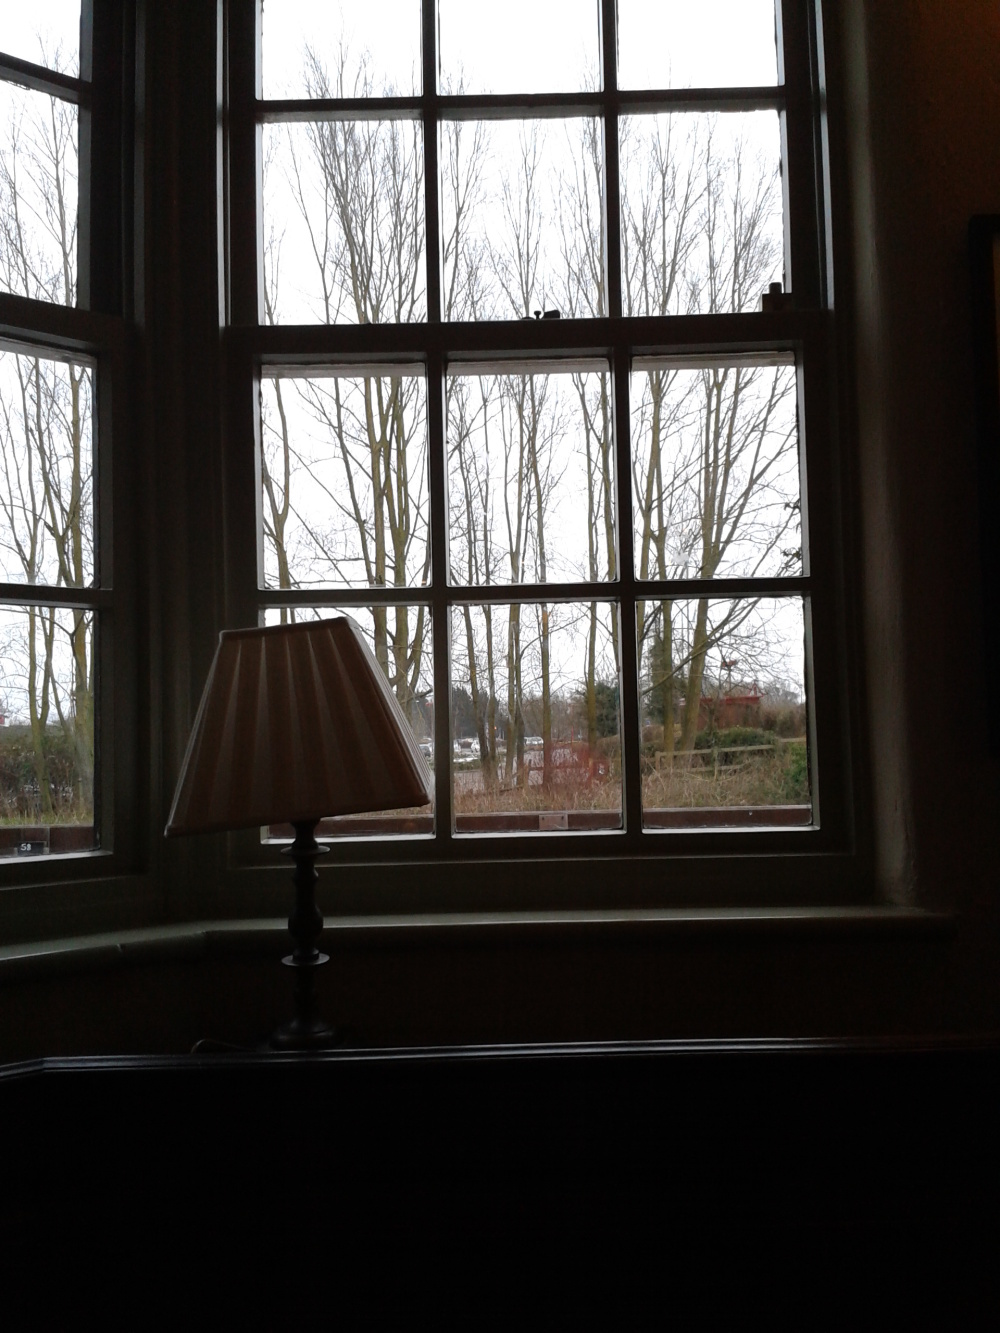 Well its quite obvioulsy a window.